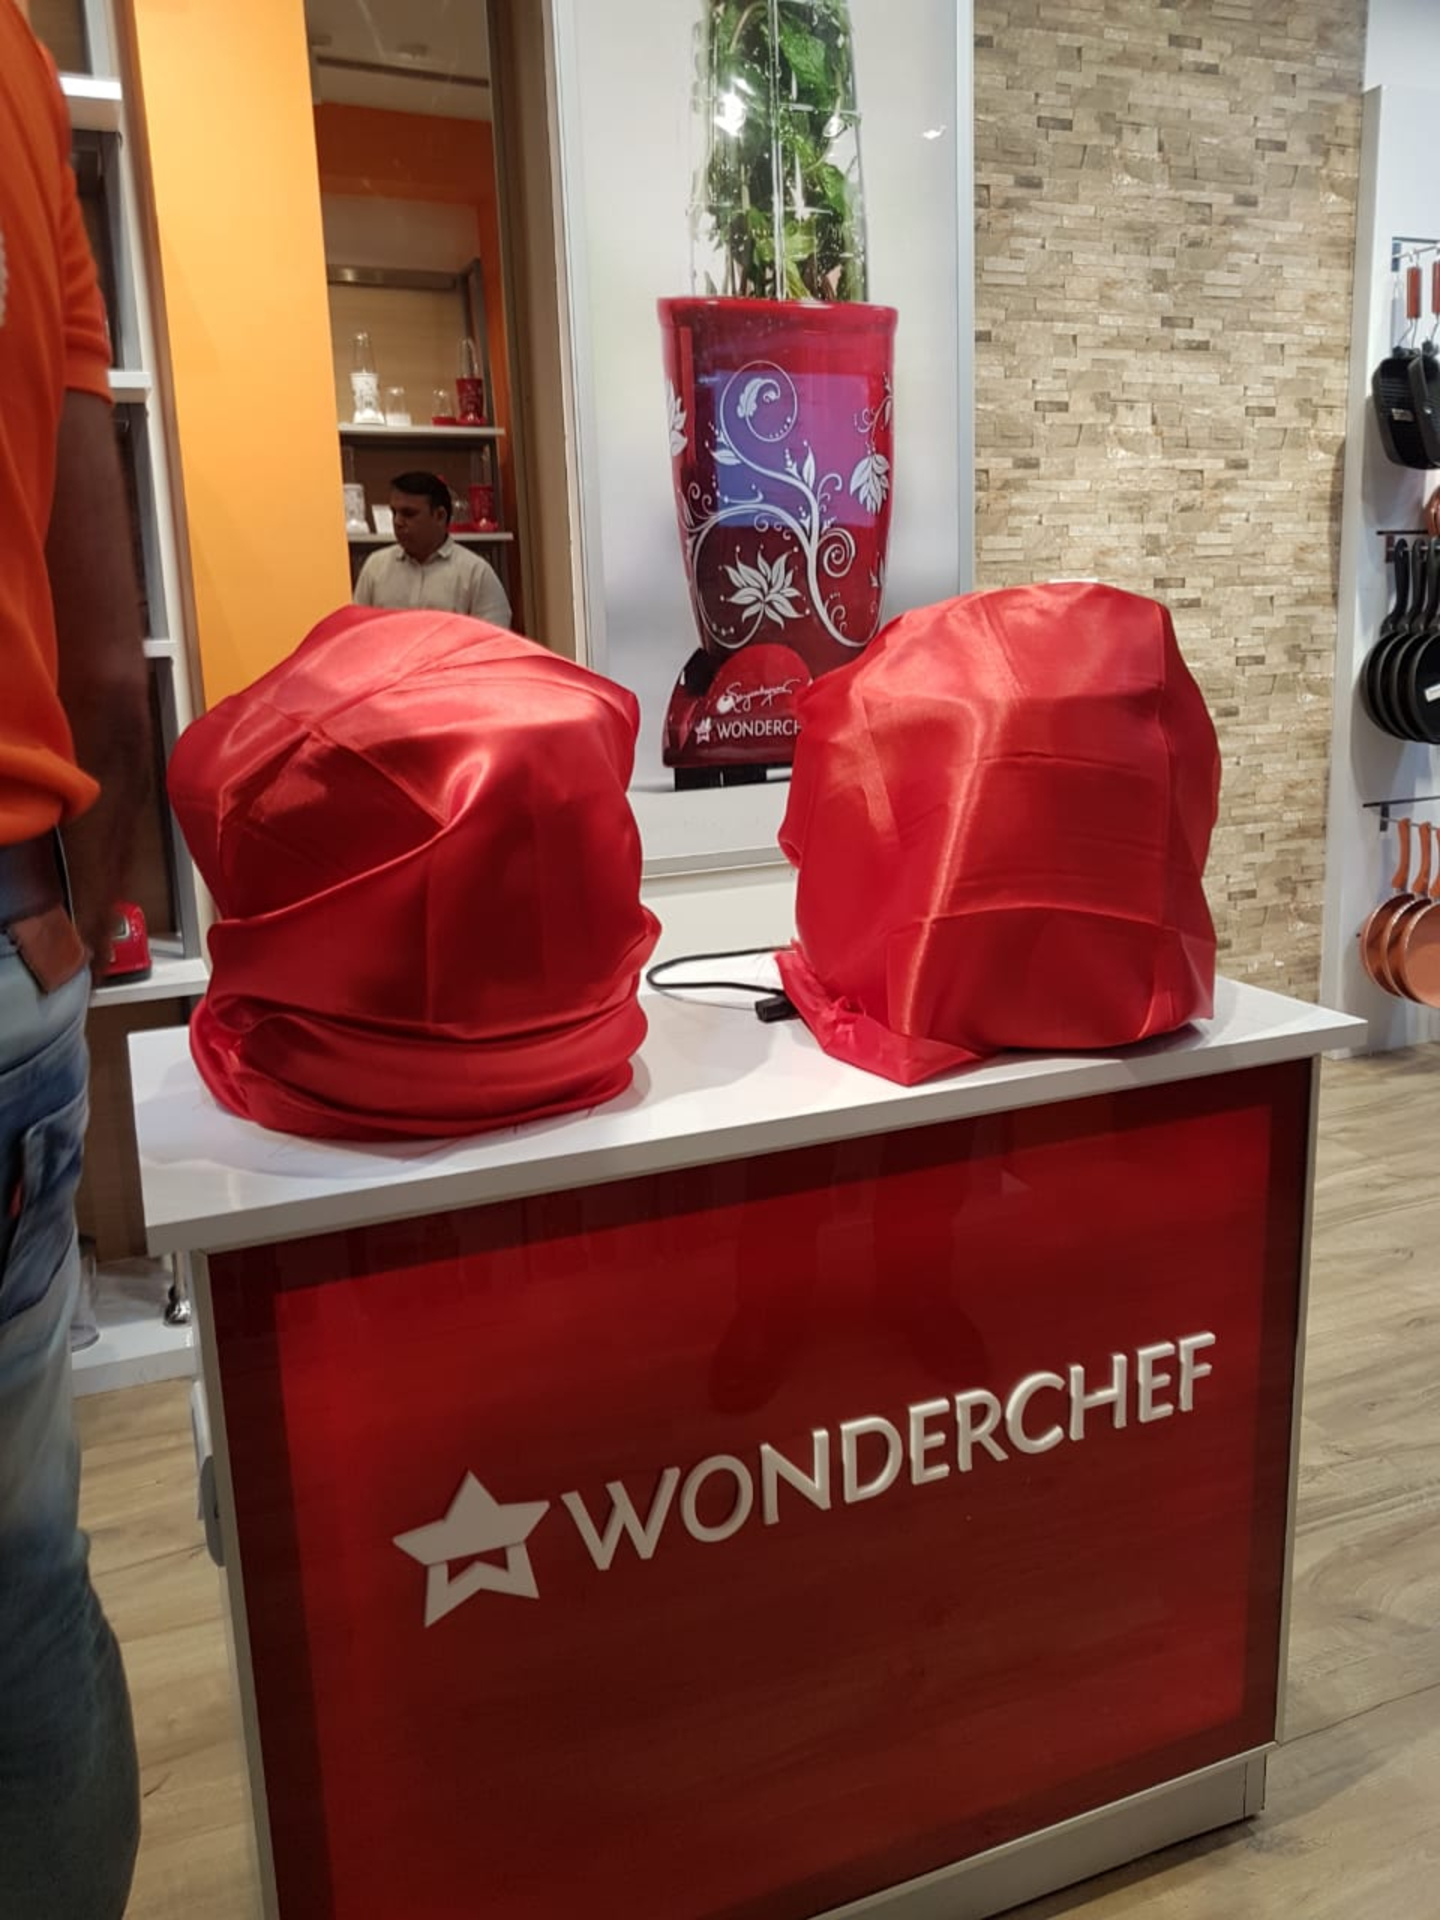 Wonderchef unveils The only real advancement in nutritious cooking – Nutri-Pot image